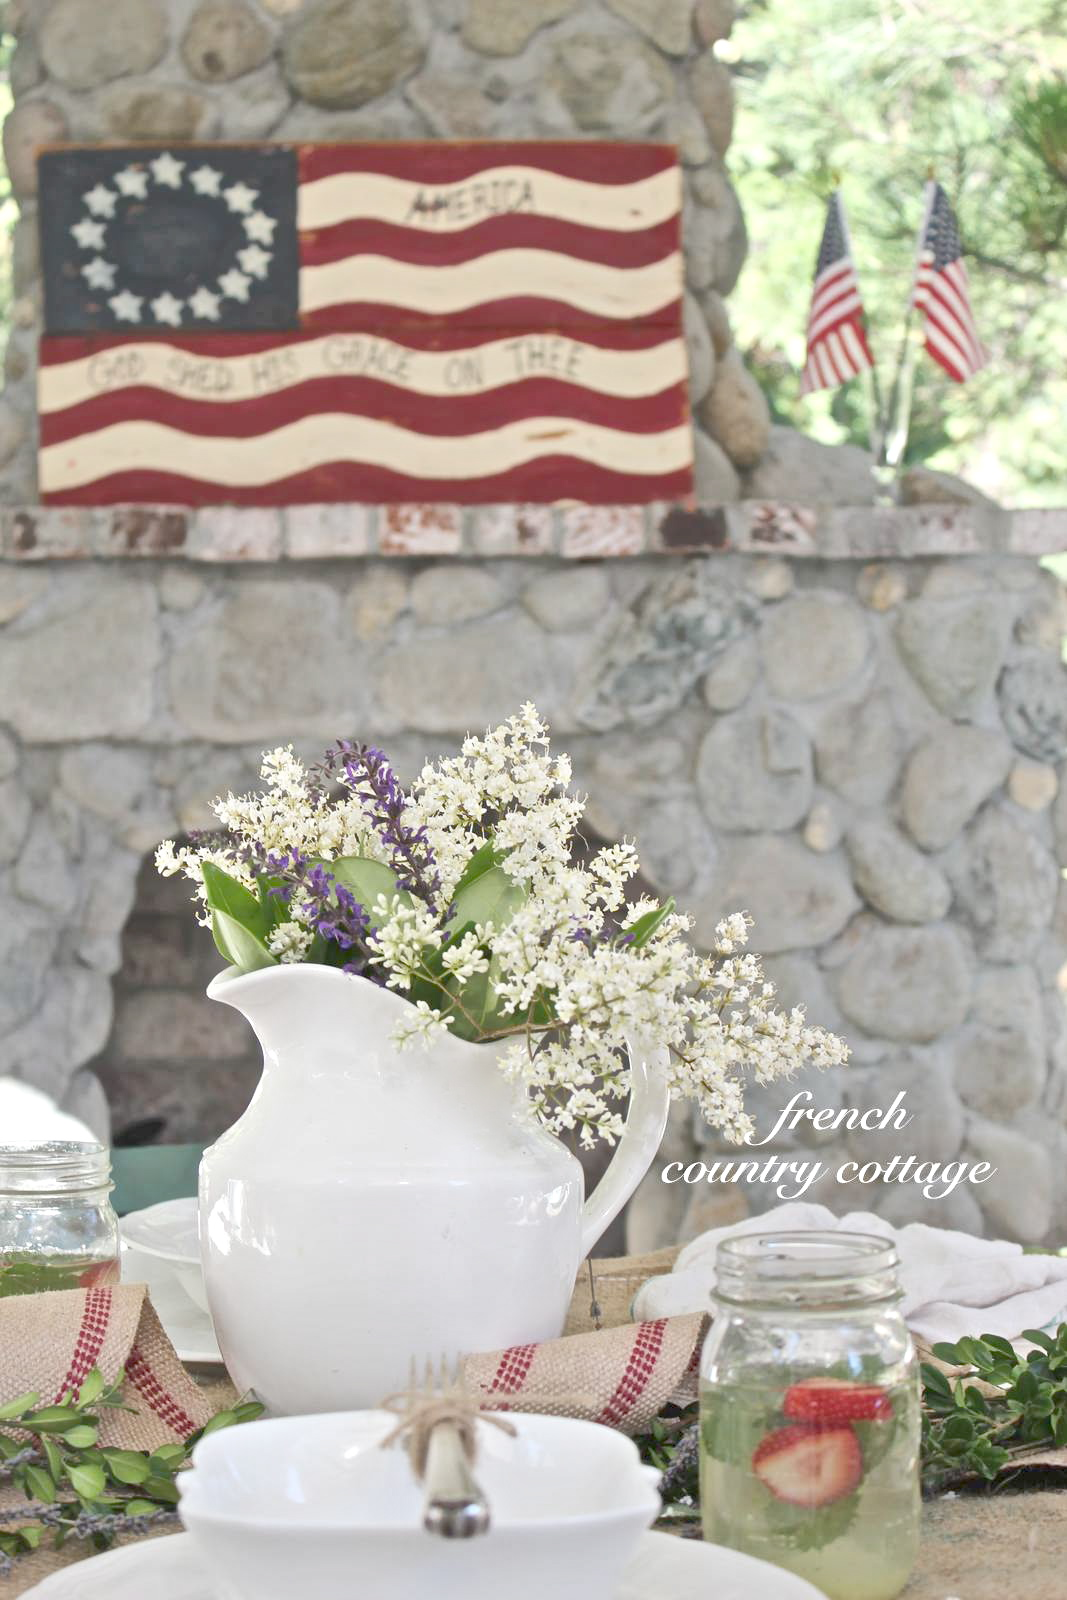 Happy 4th Of July French Country Cottage